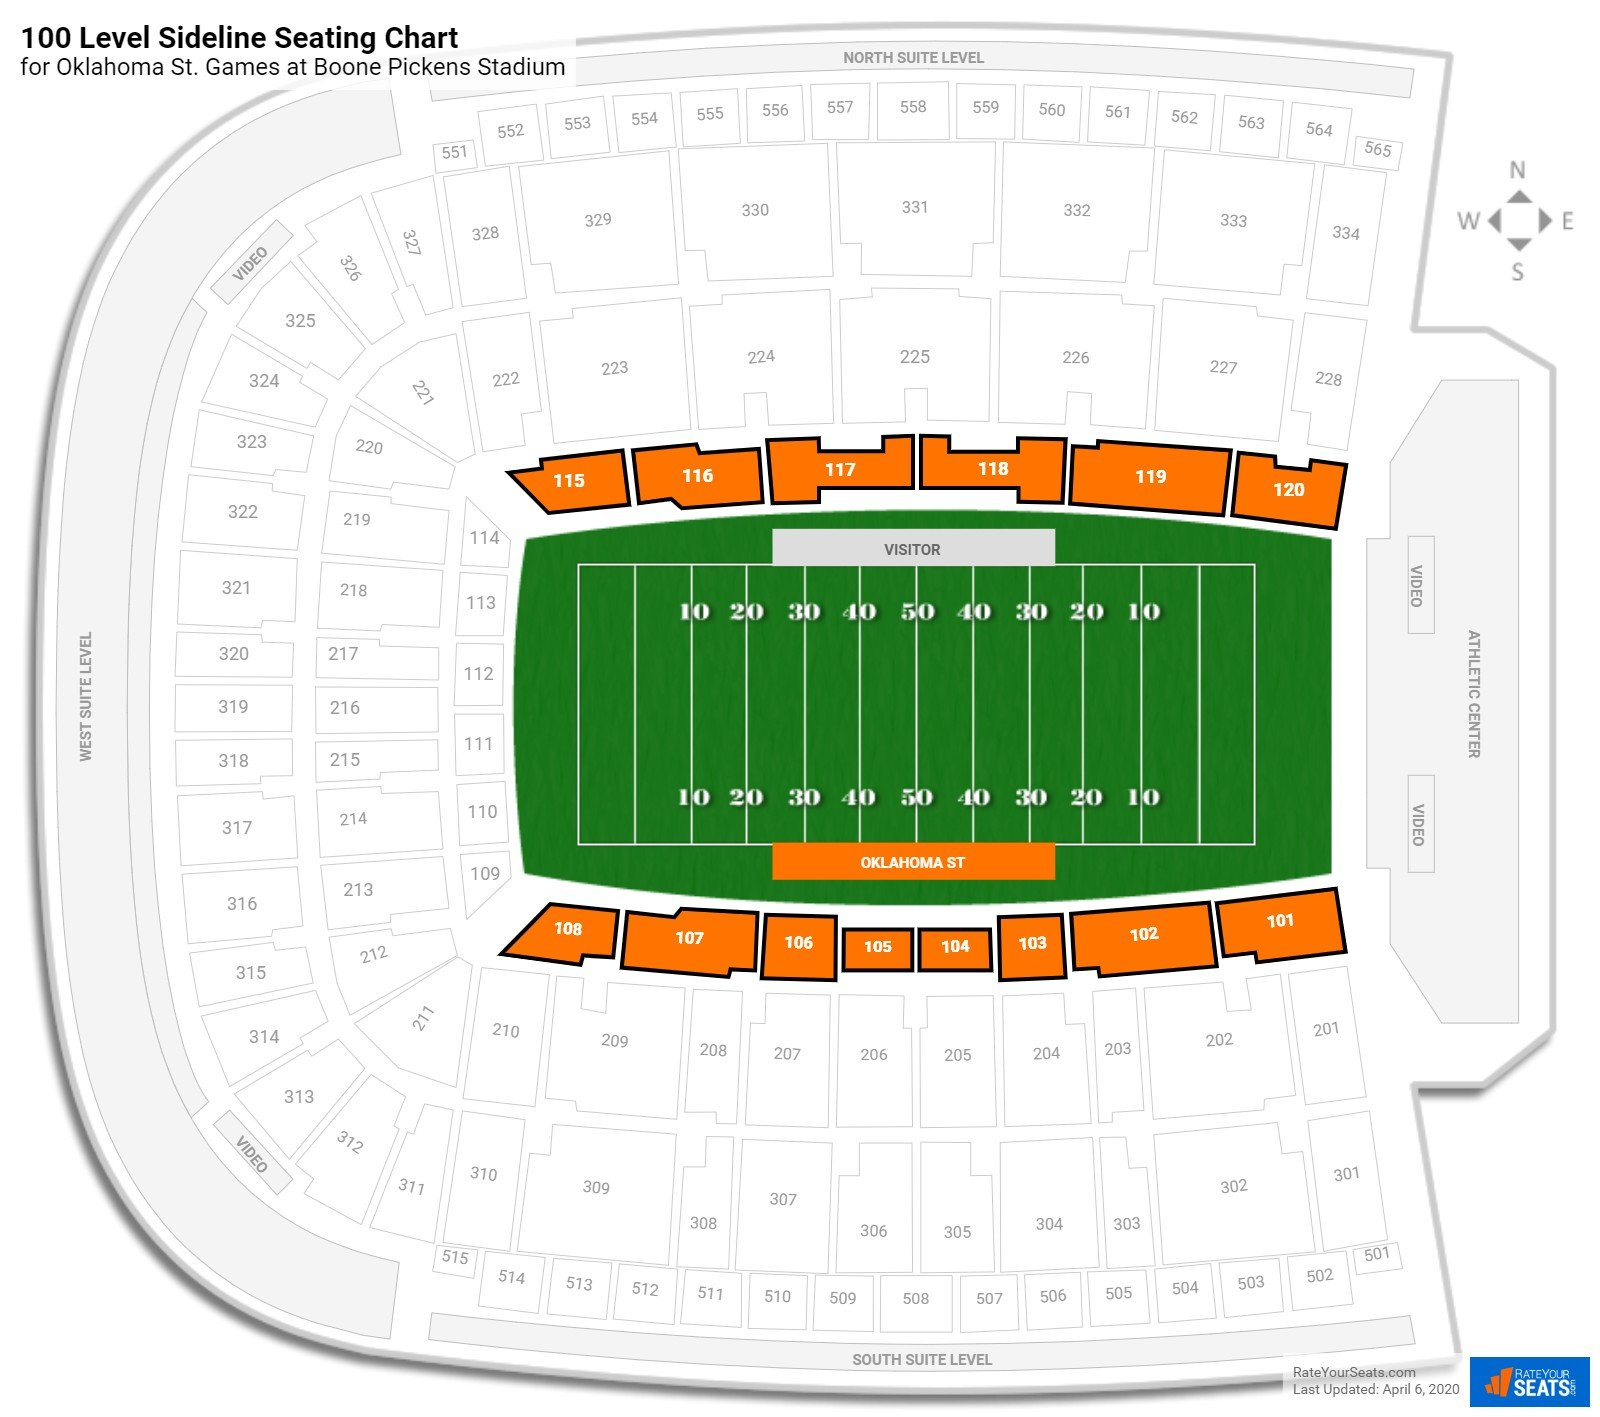 Boone Pickens Stadium 100 Level Sideline seating chart